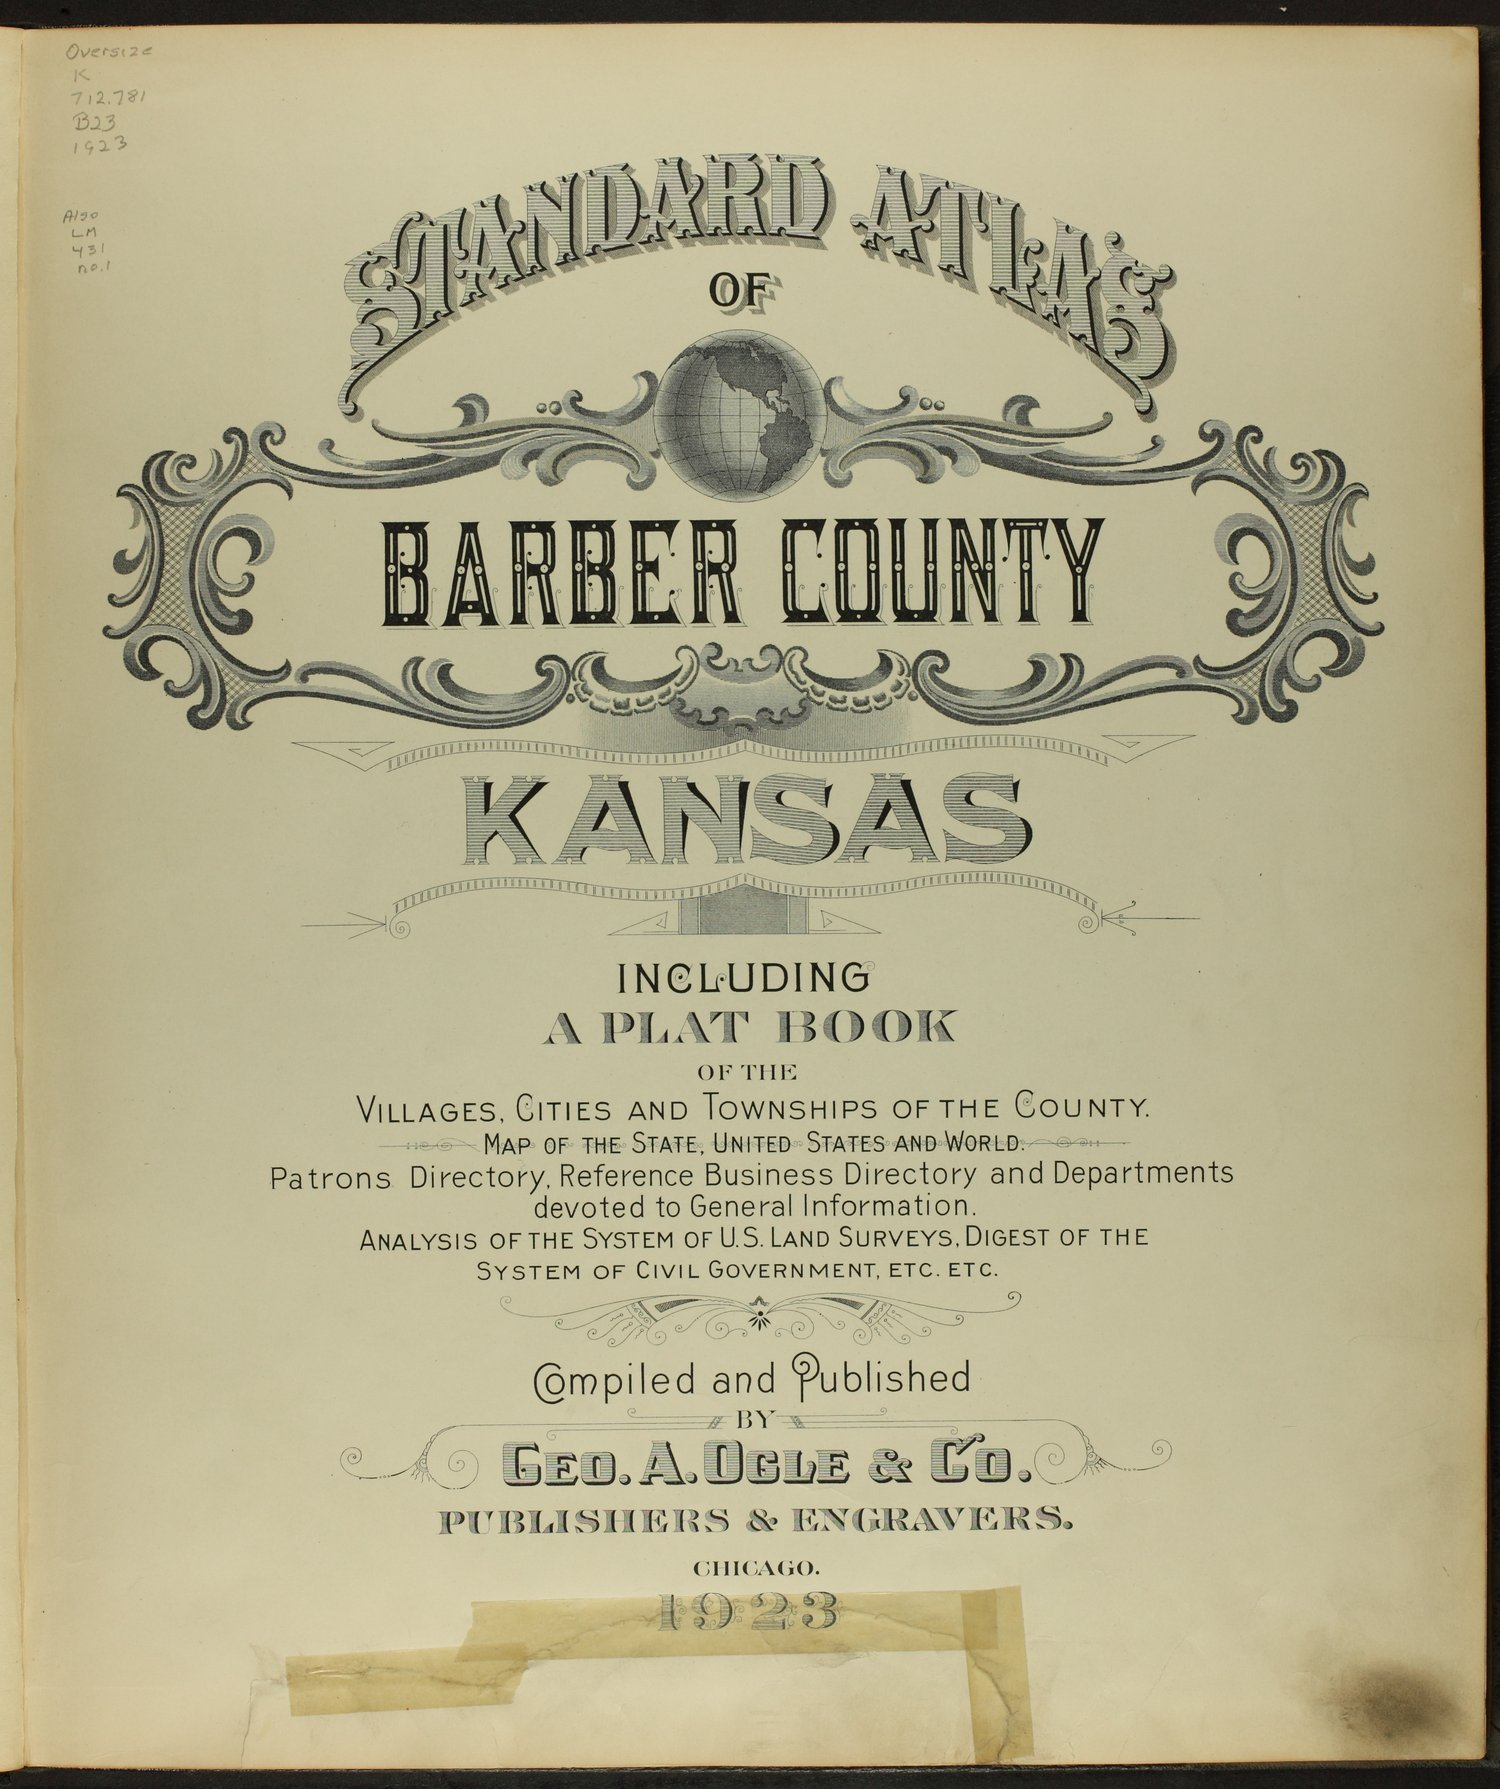 Standard atlas of Barber County, Kansas - Title Page